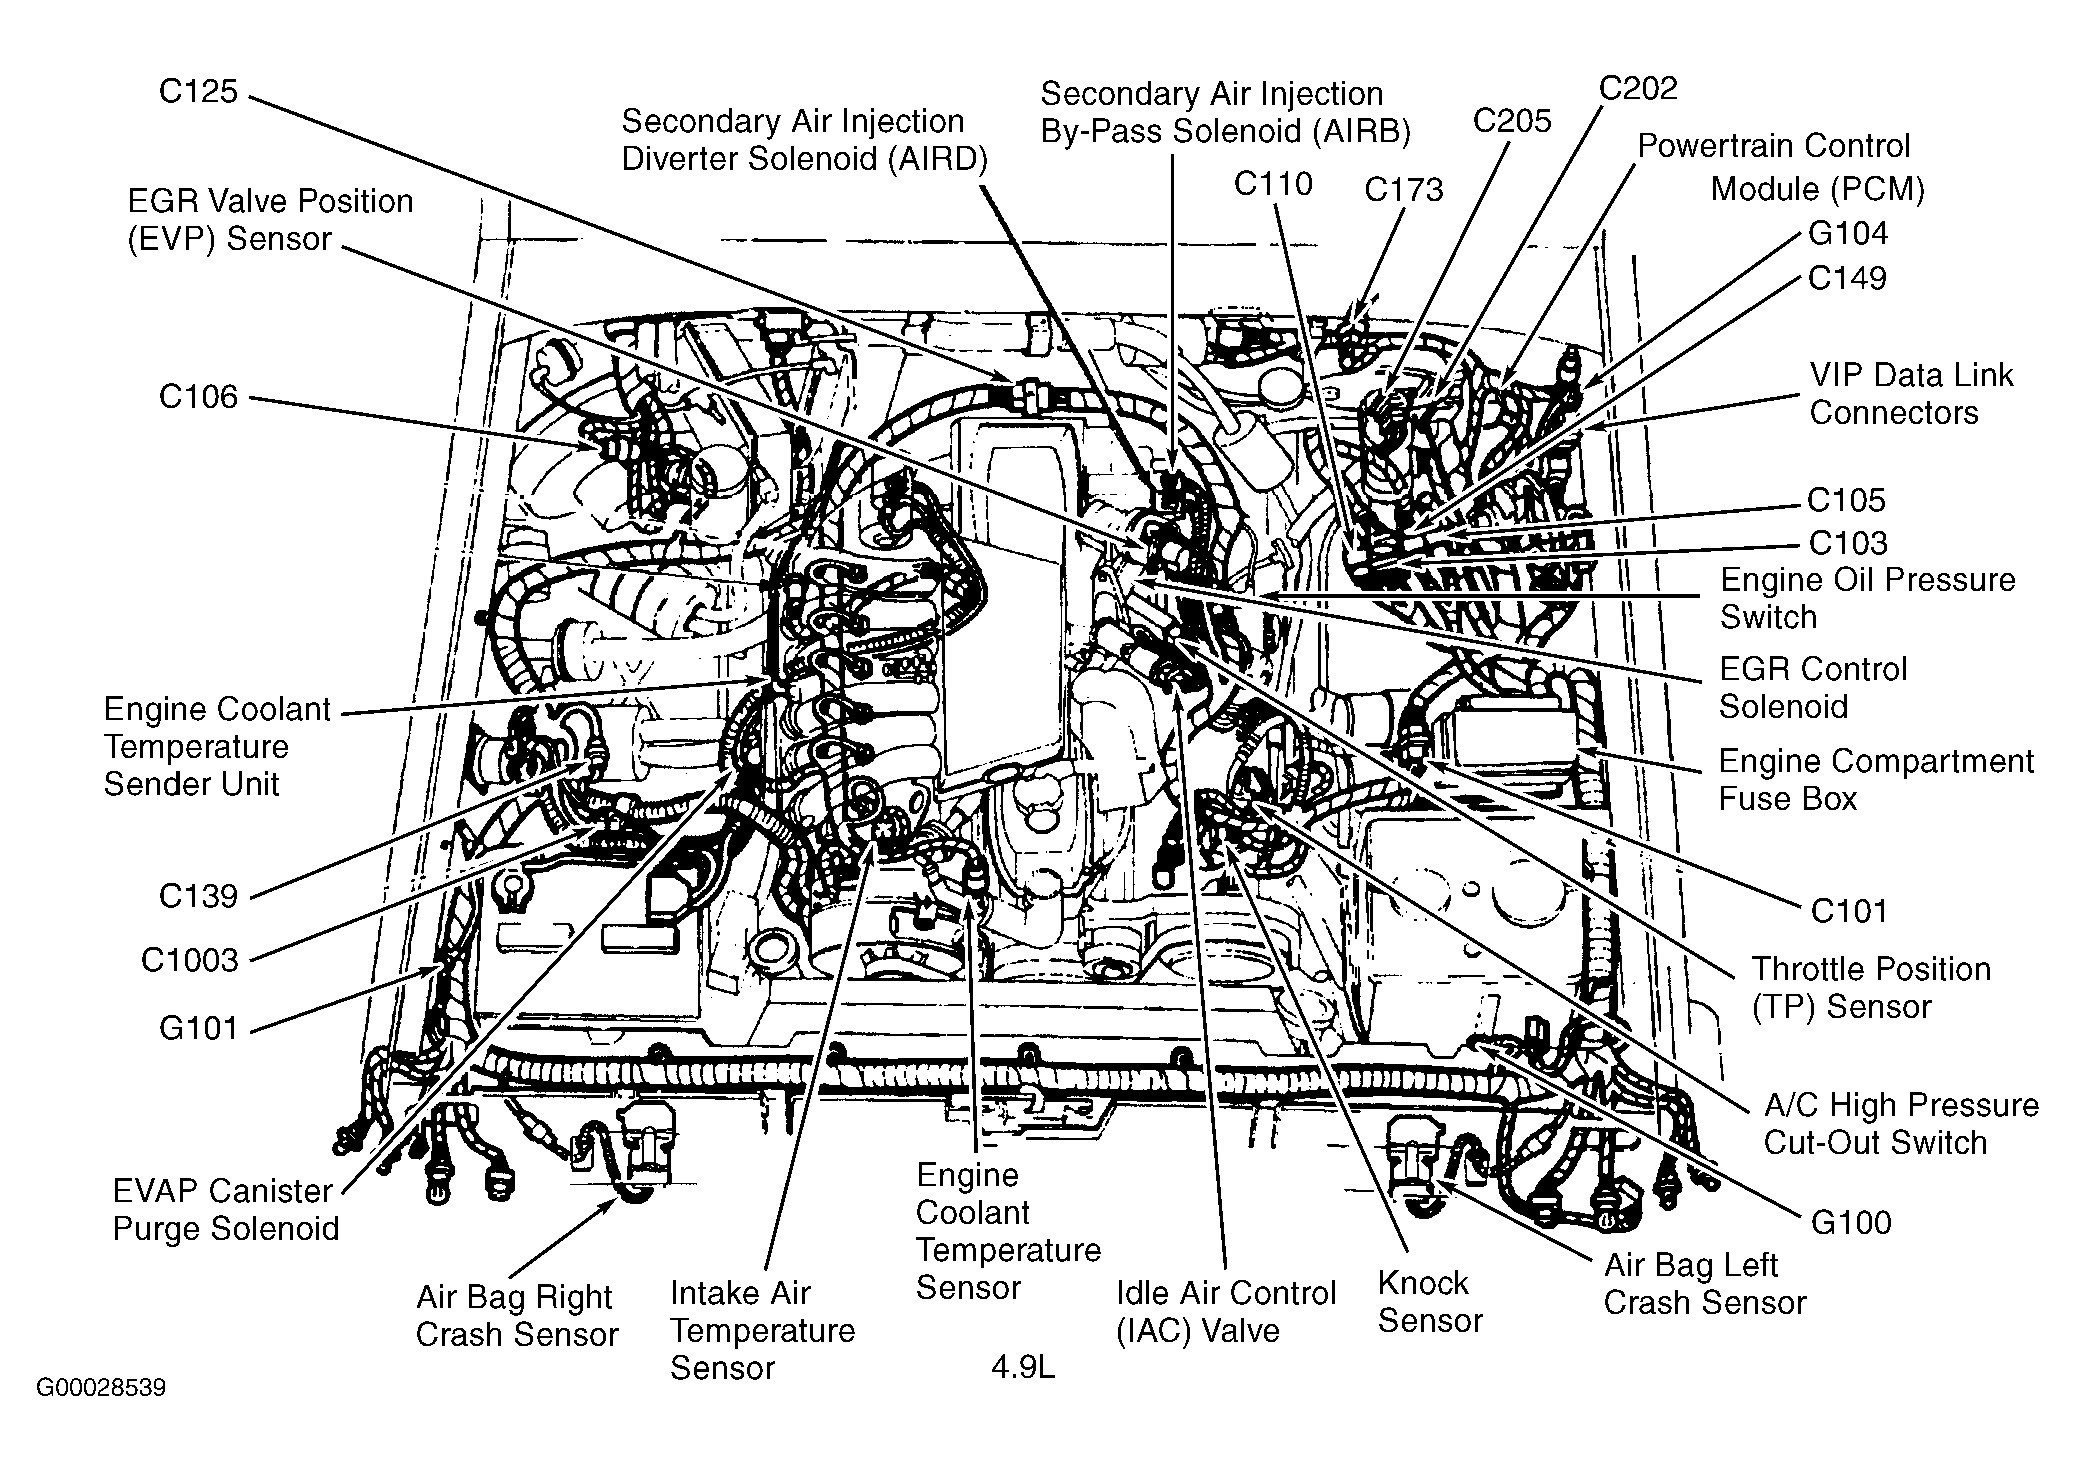 1994 ford Ranger Engine Diagram 1996 ford 460 Engine Diagram Simple Guide About Wiring Diagram Of 1994 ford Ranger Engine Diagram